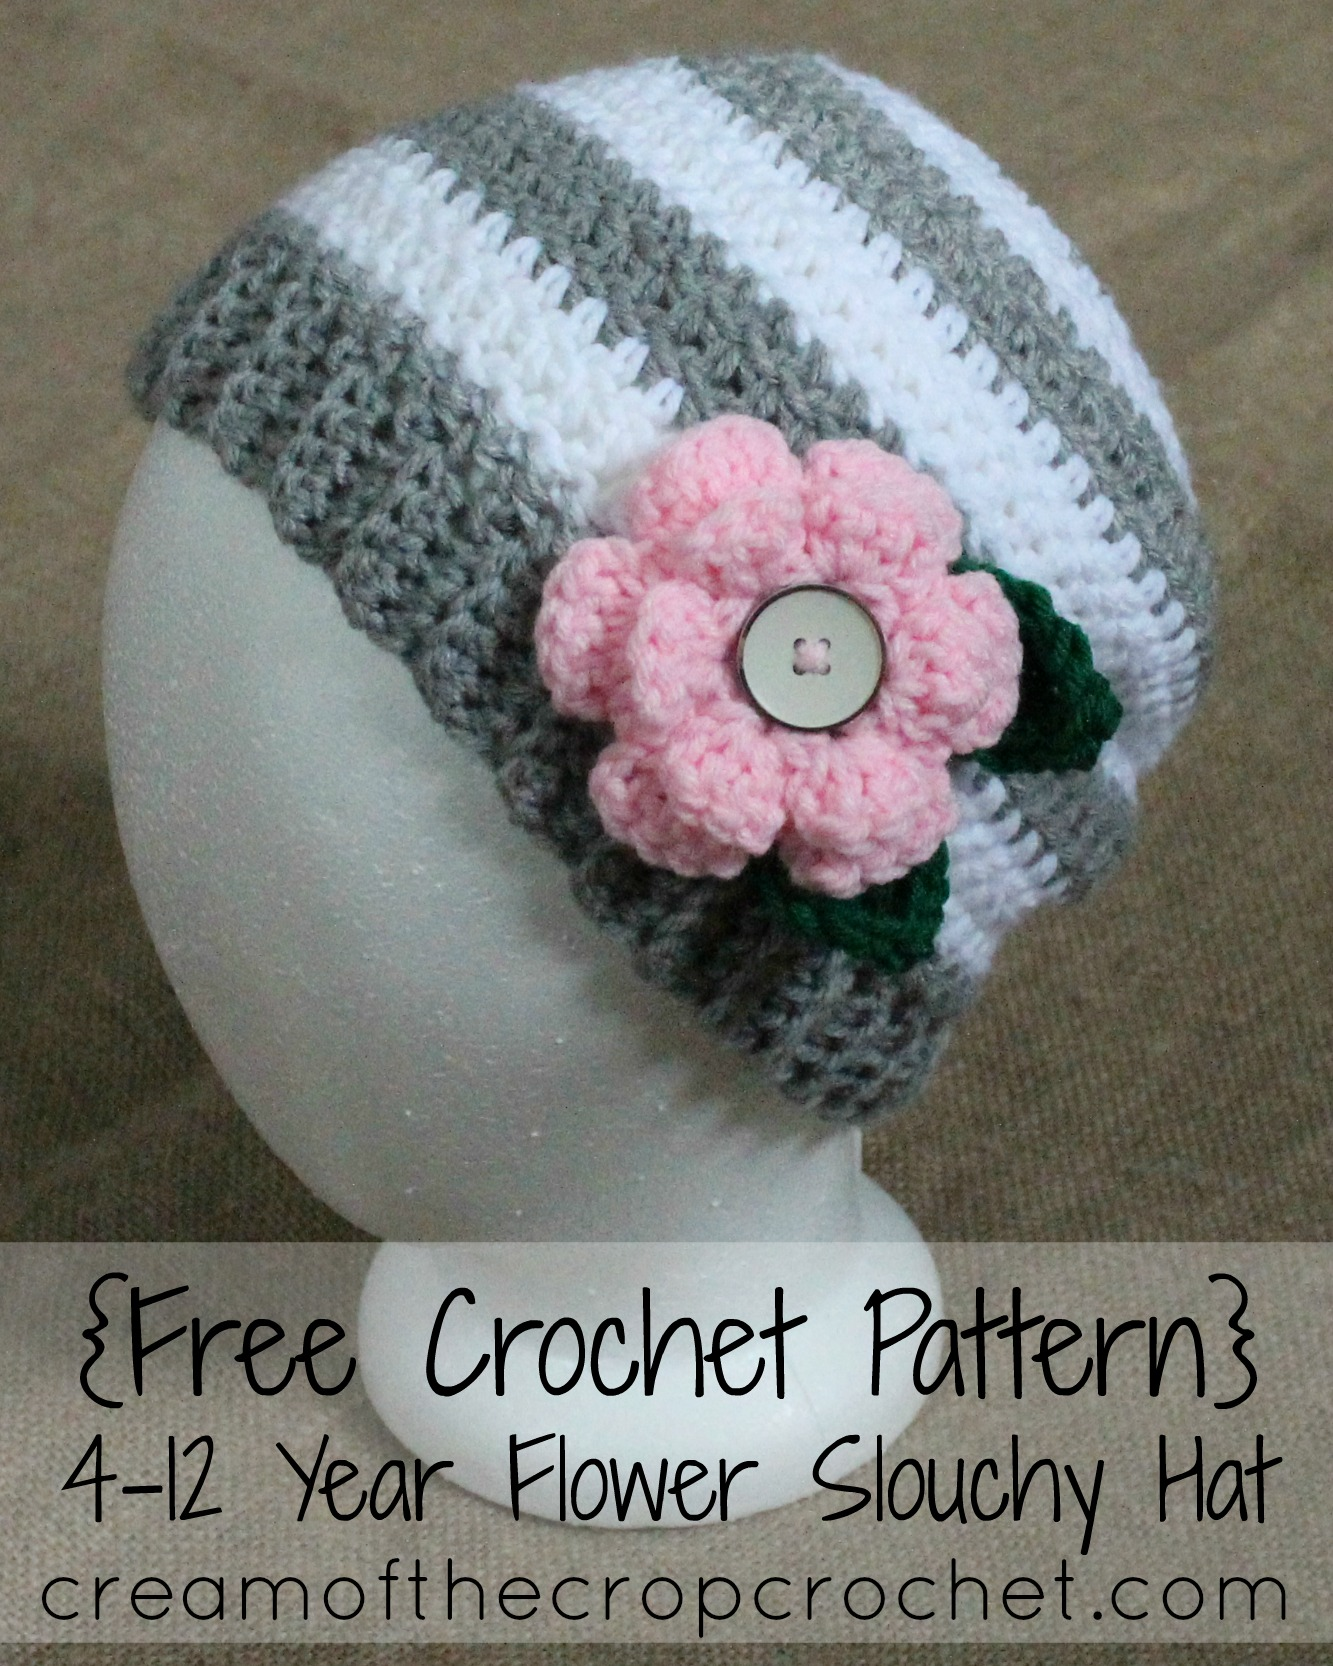 4-12 Year Flower Slouchy Hat Crochet Pattern